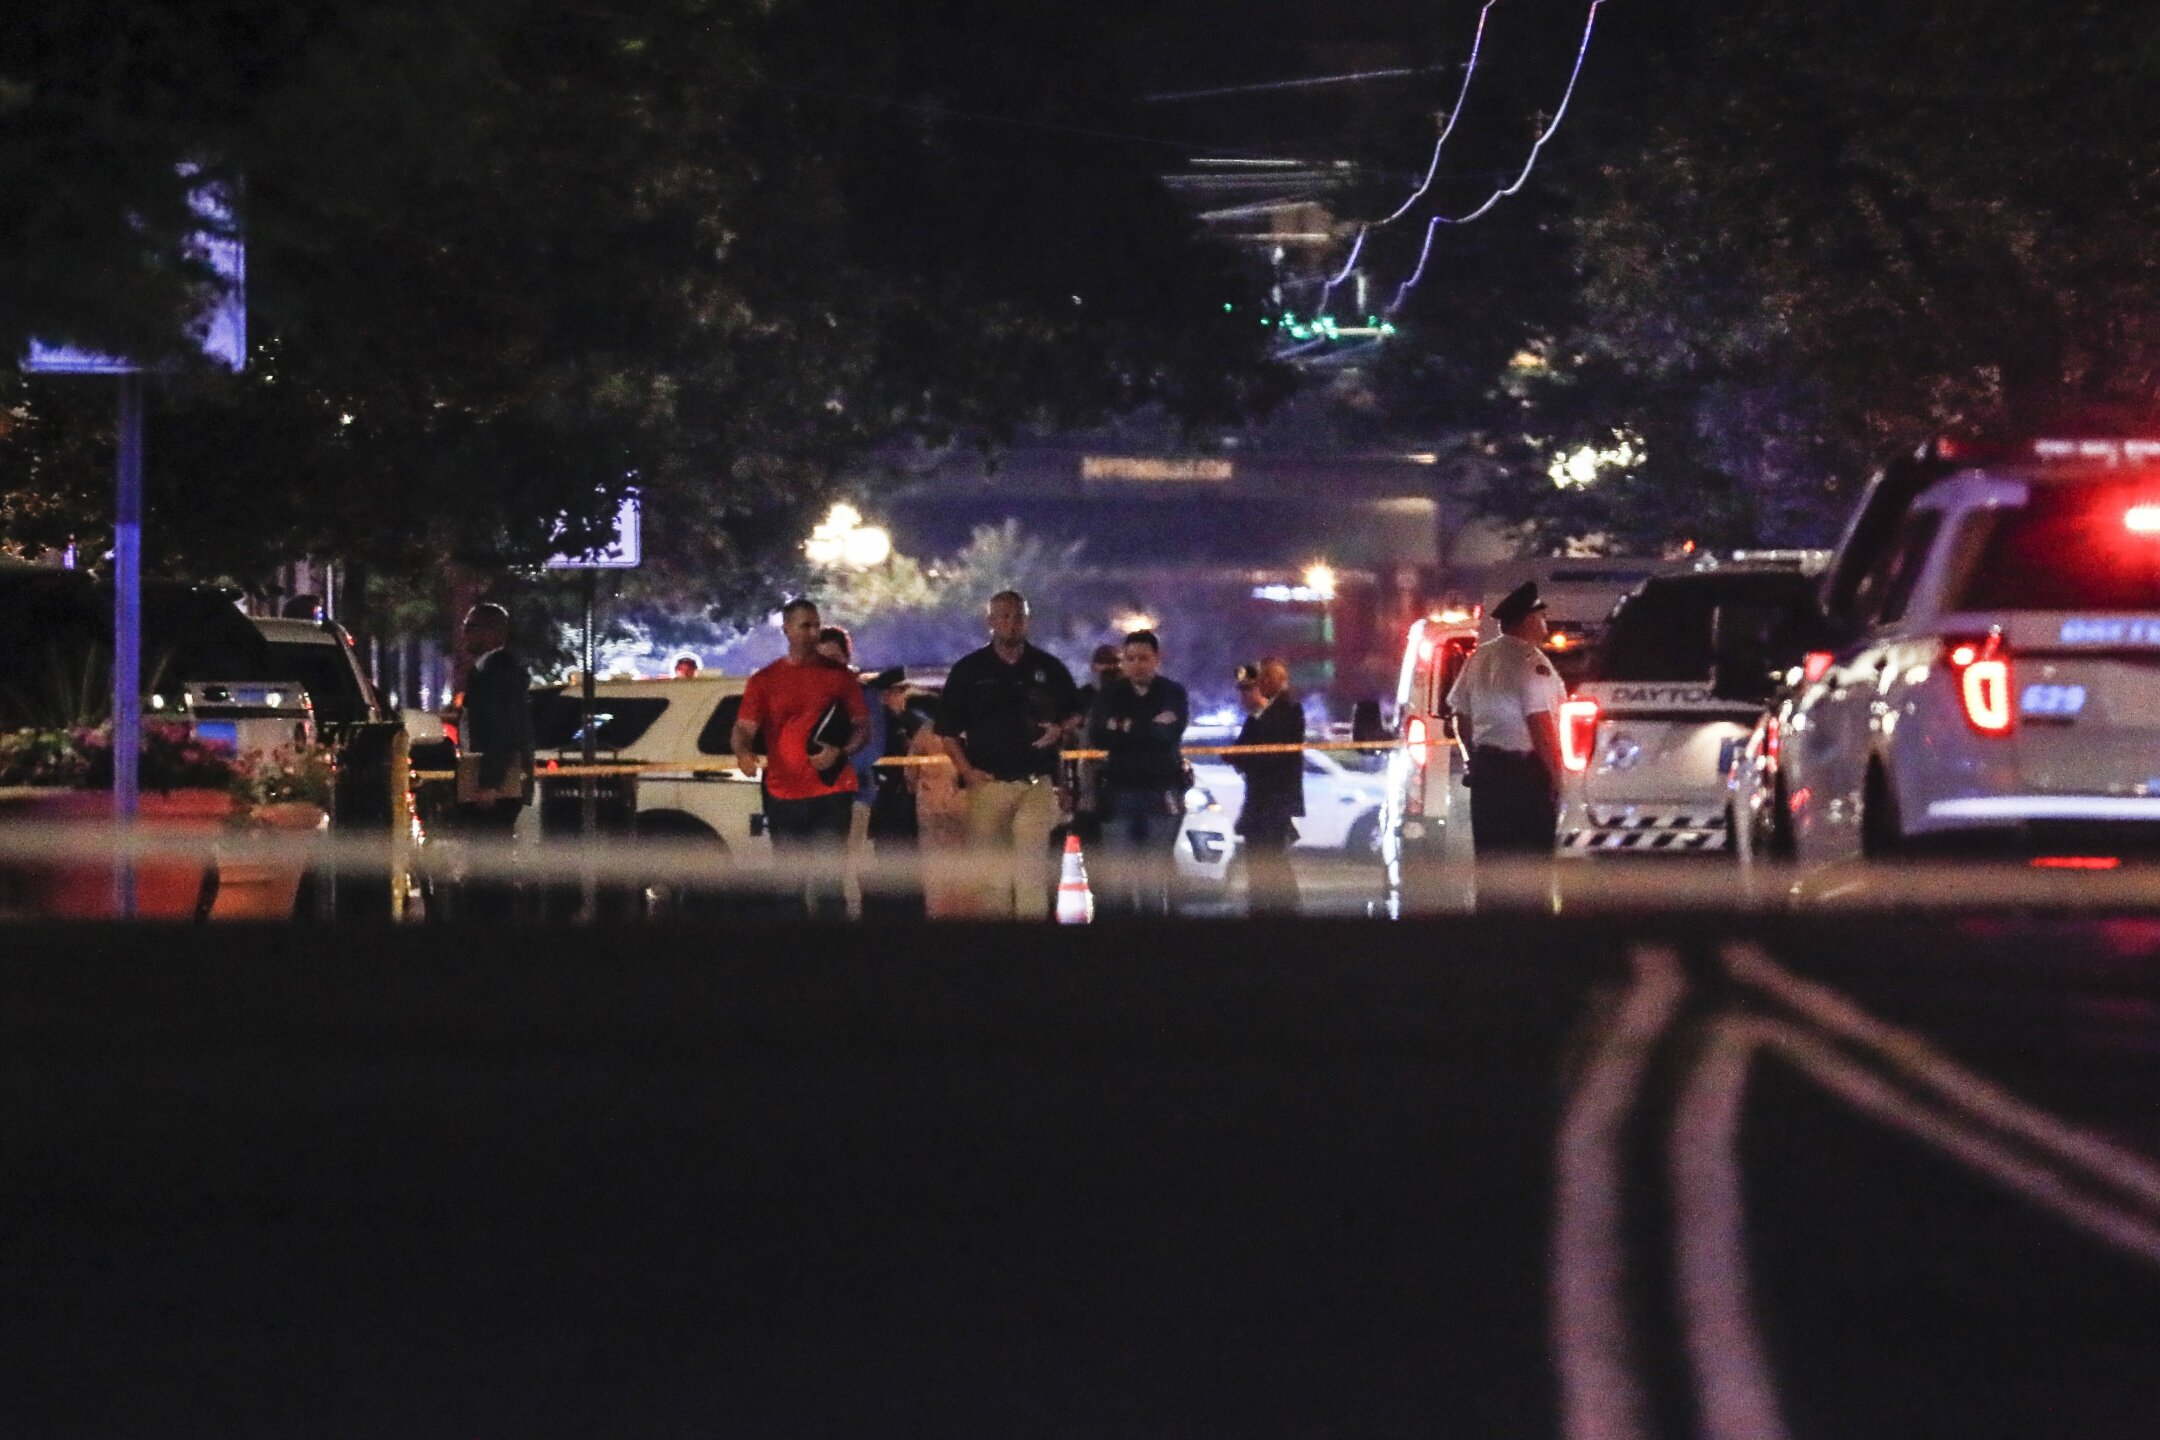 Photos: Shooter's sister among 9 dead in Dayton, Ohio; 27 others injured